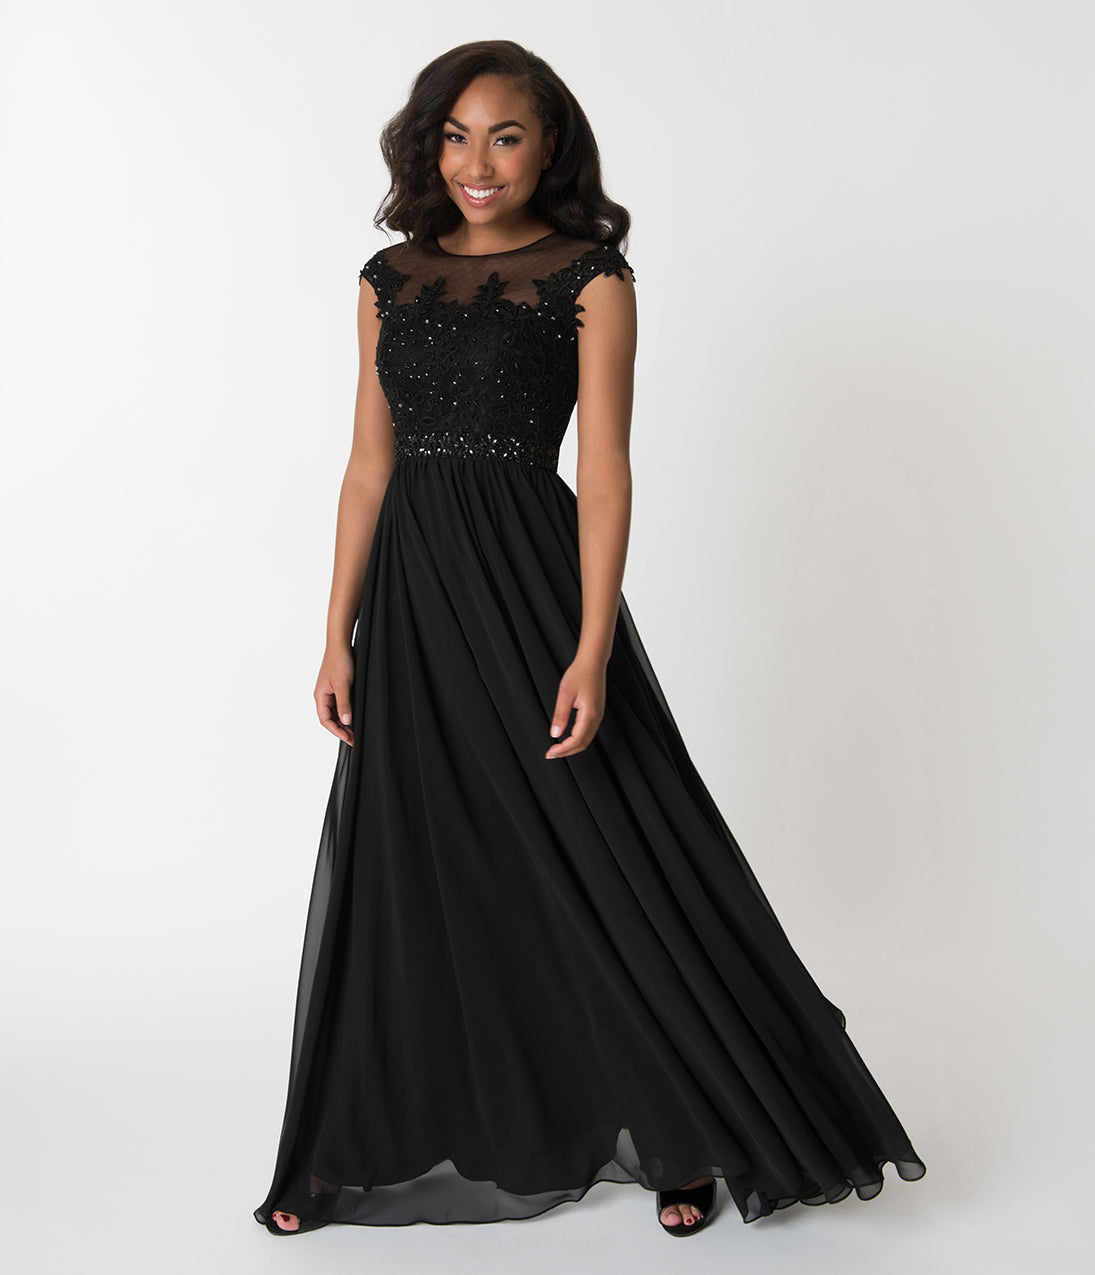 1950s Style Cocktail Dresses & Gowns Black Embellished Lace  Chiffon Cap Sleeve Prom Gown $142.00 AT vintagedancer.com